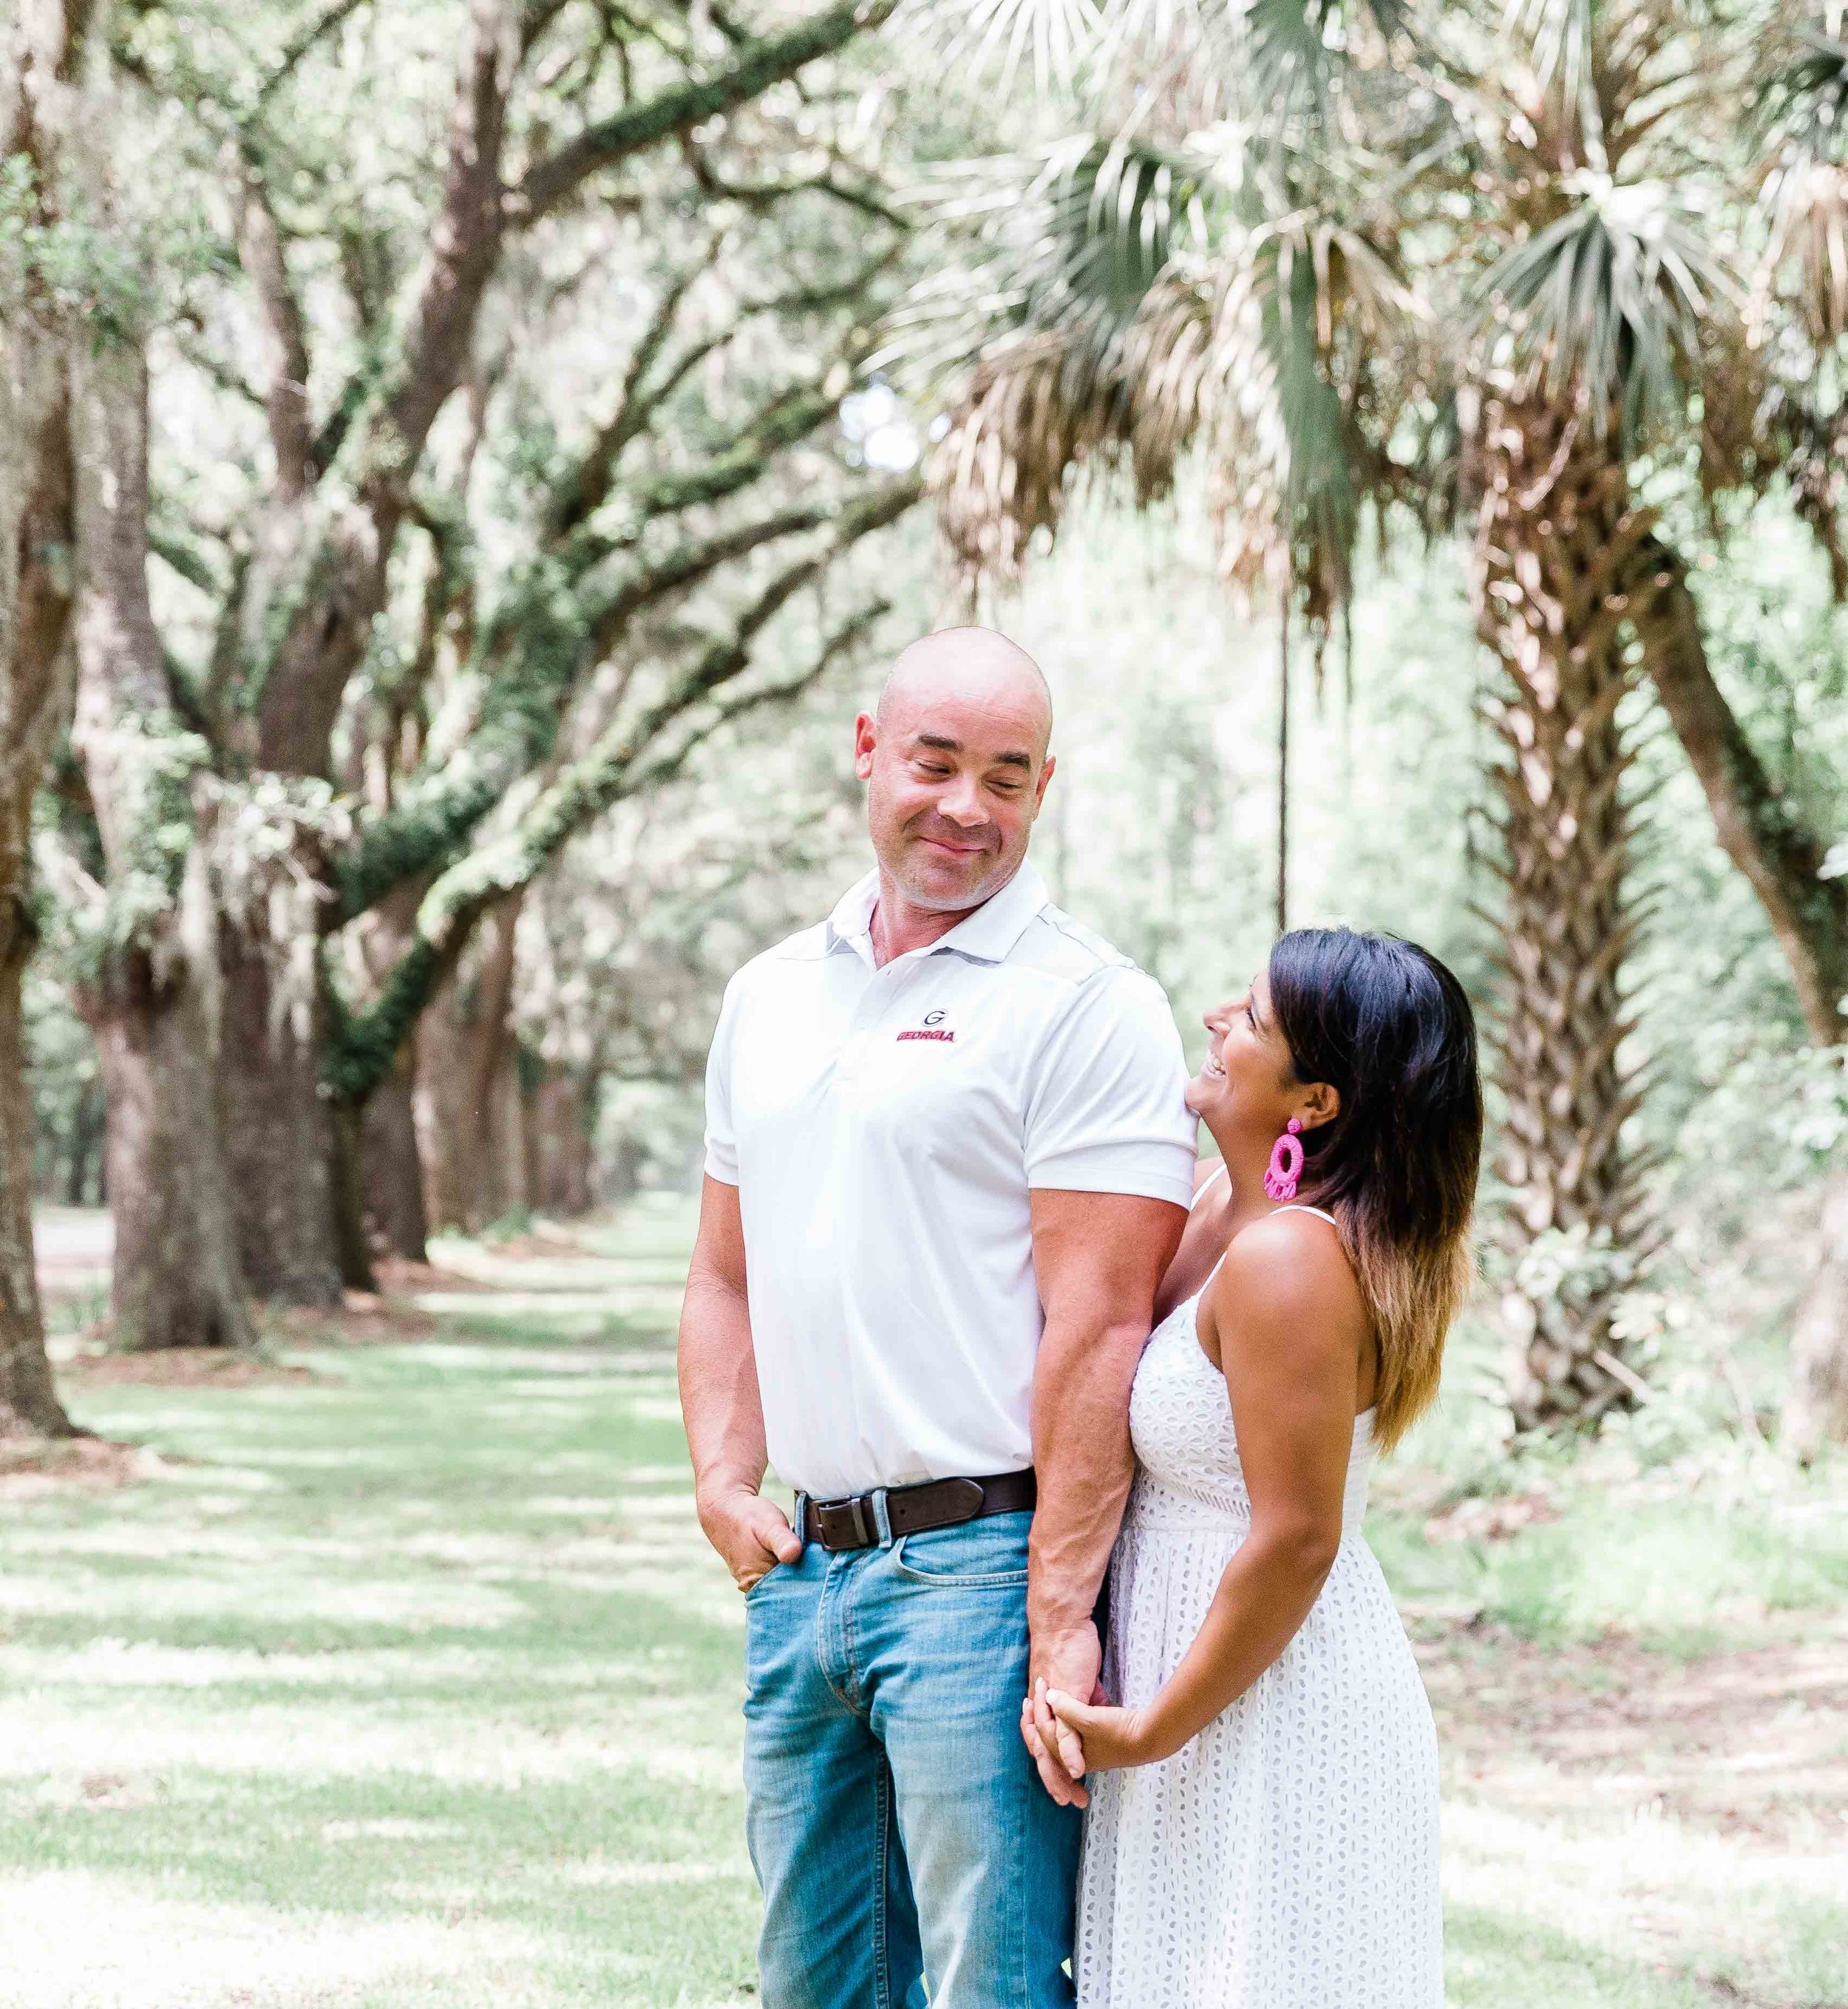 AJ0A8585Reynolds Square and Wormsloe Engagement Session10.jpg